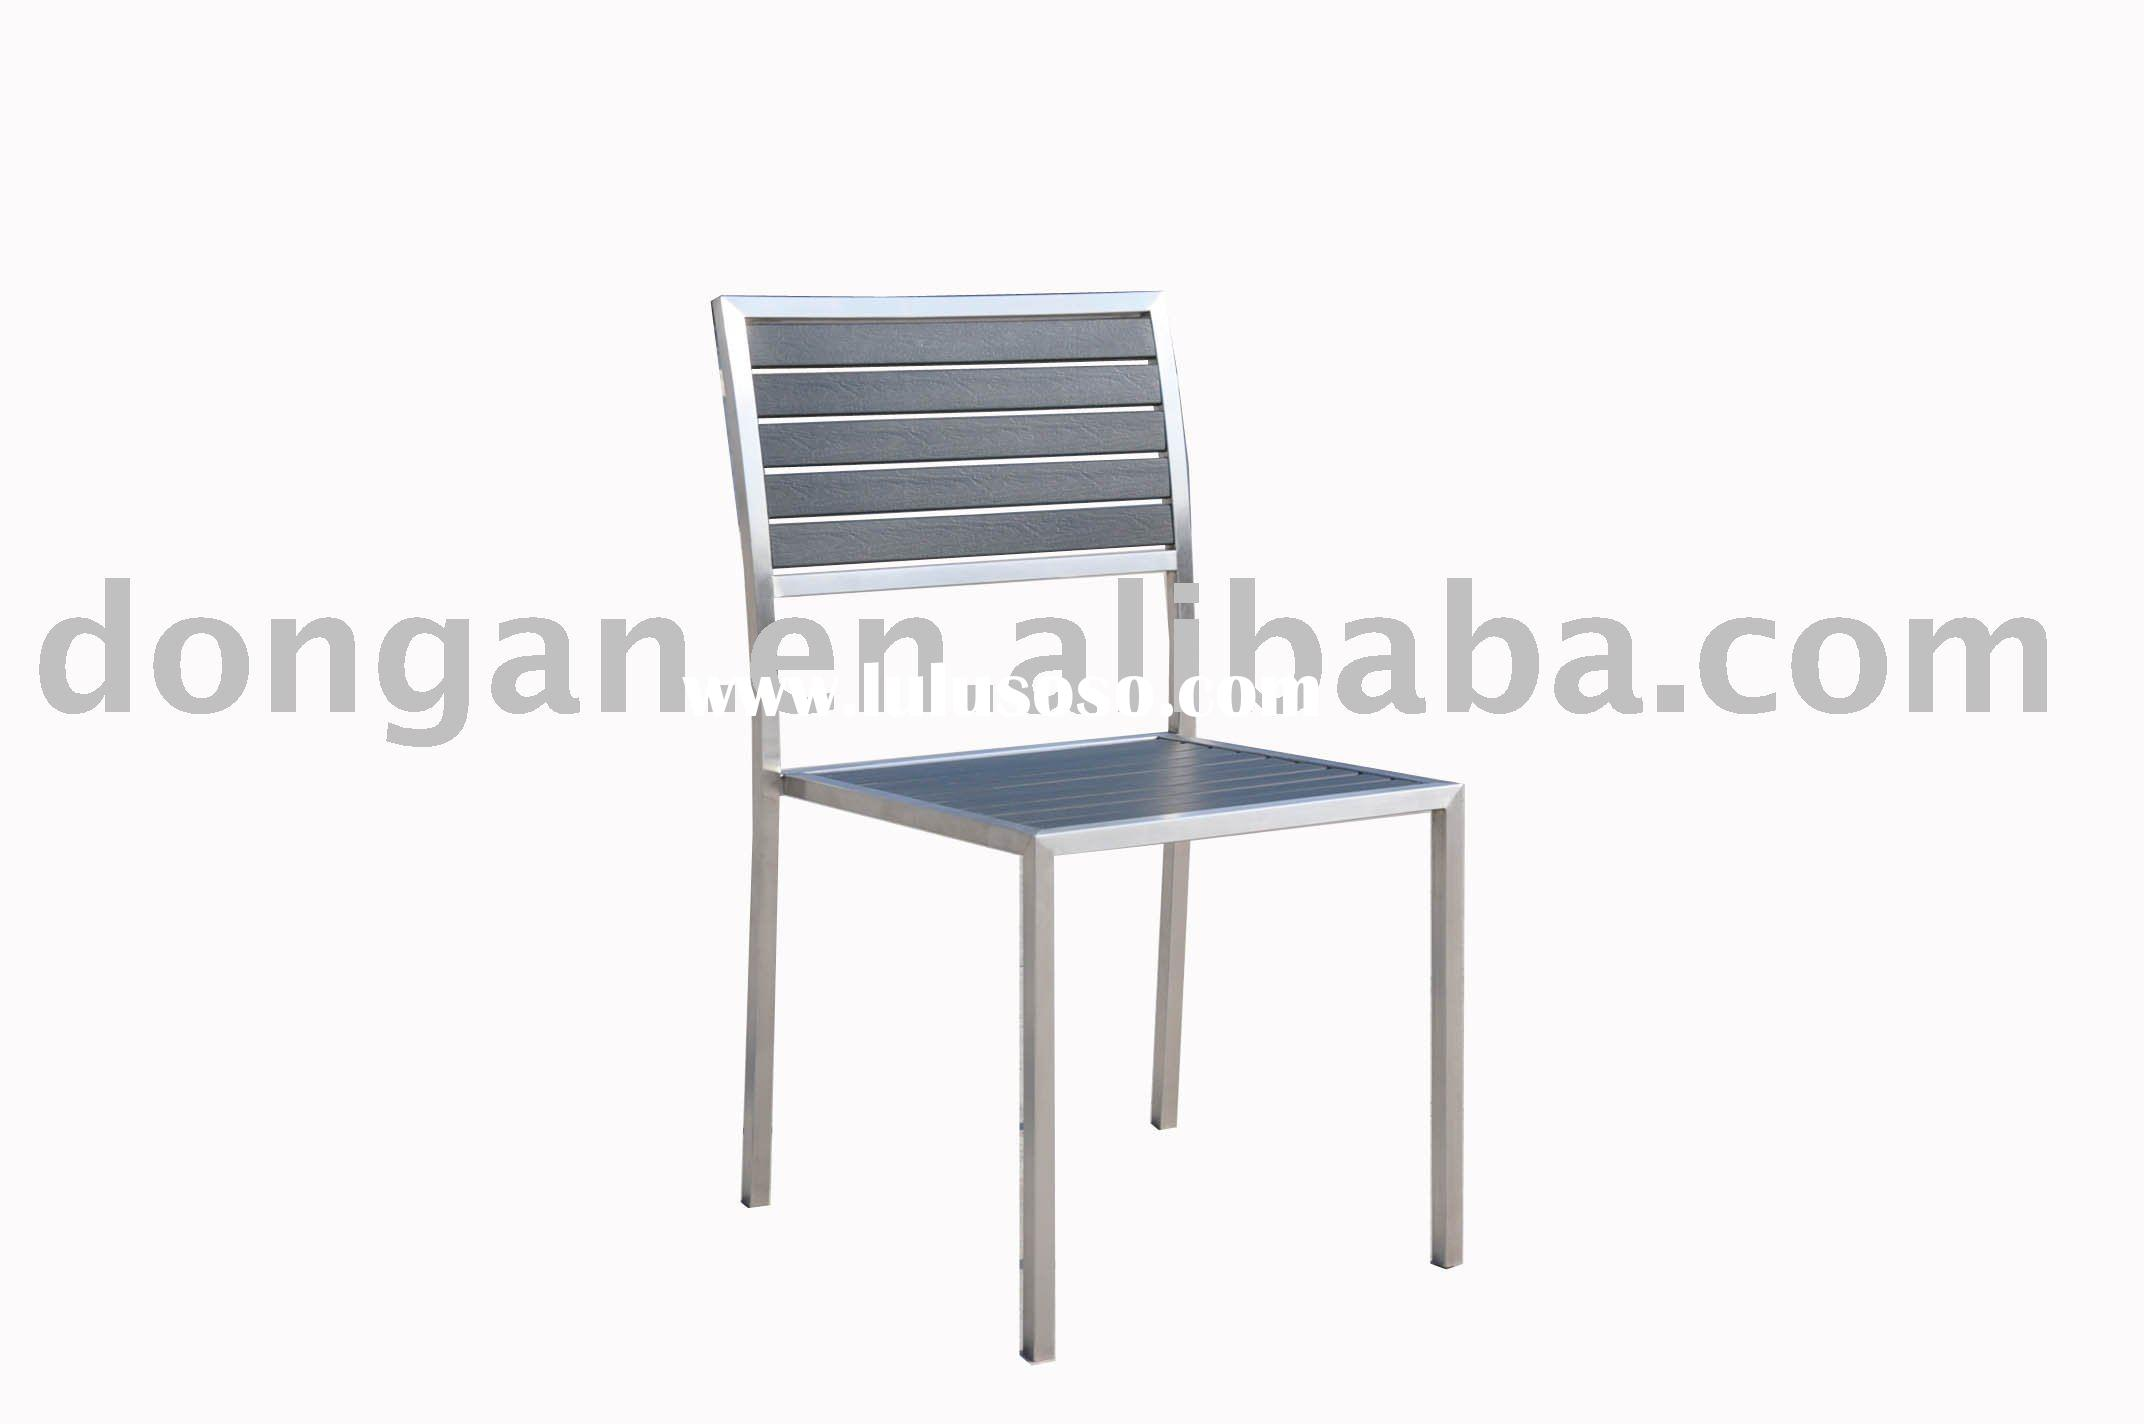 Simple practial furniture stainless steel frame restaurant chair,PS wood chair,dining chair SPS-C05A